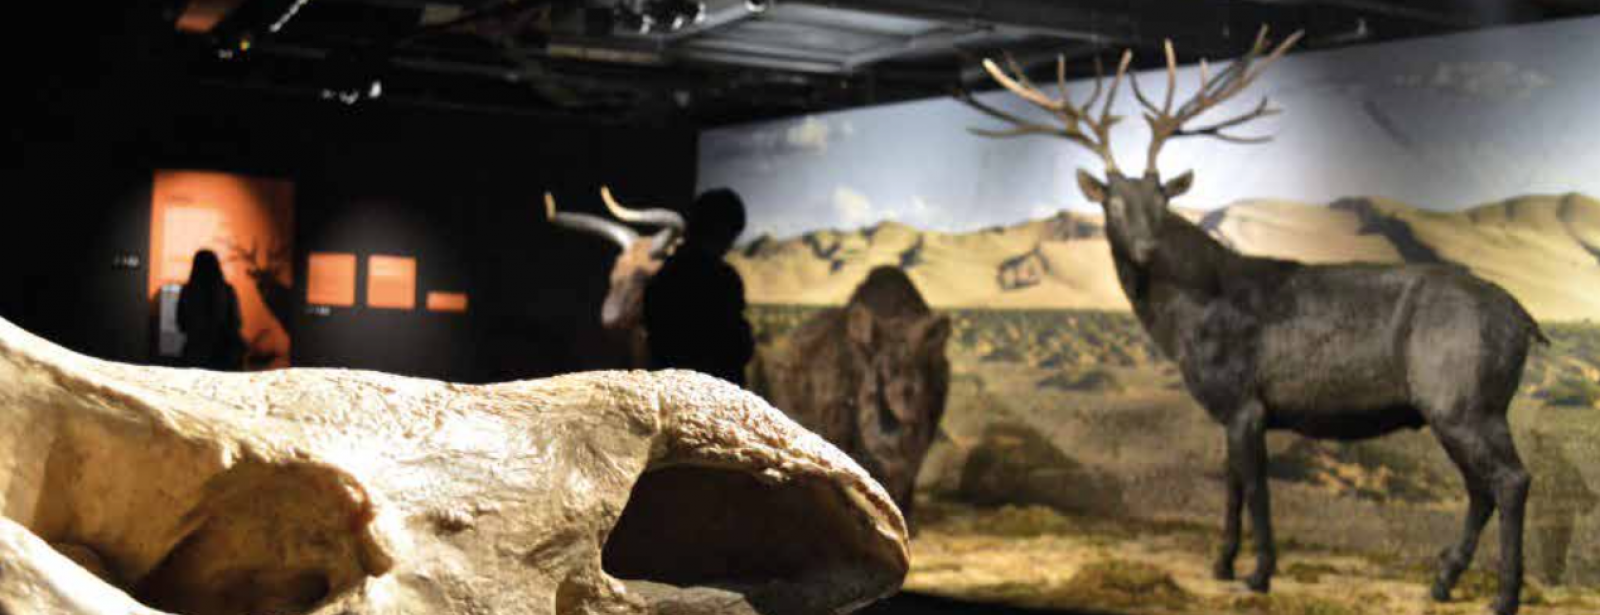 MAMMOTHS – GIANTS OF THE ICE AGE